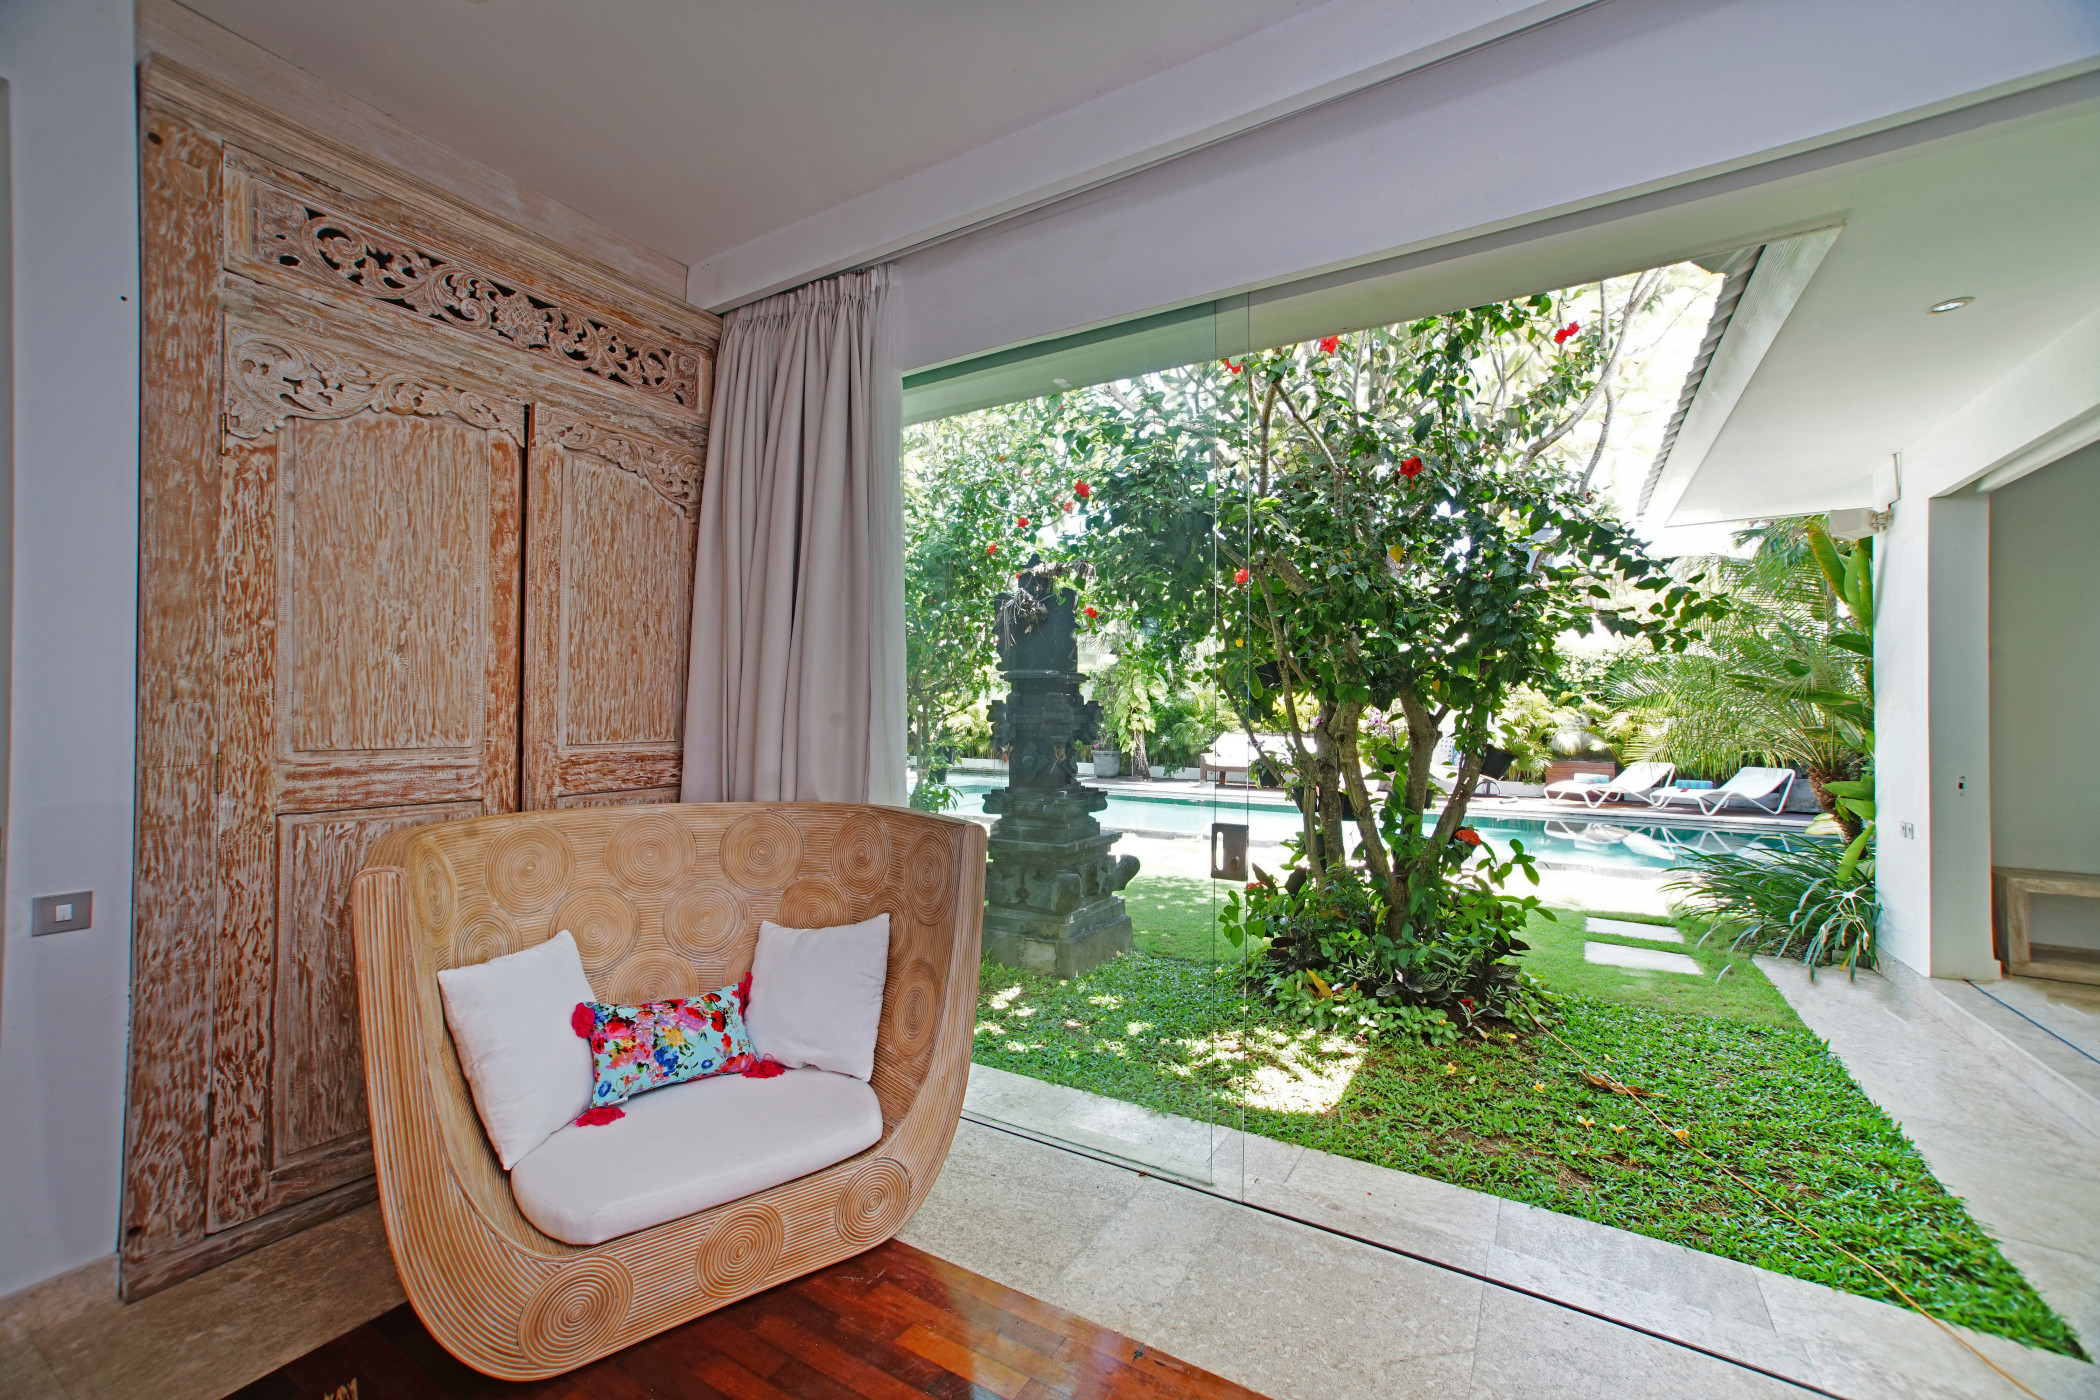 Villa JUMAH - Comfortable Home, Walk To BERAWA BEACH, Quiet Area